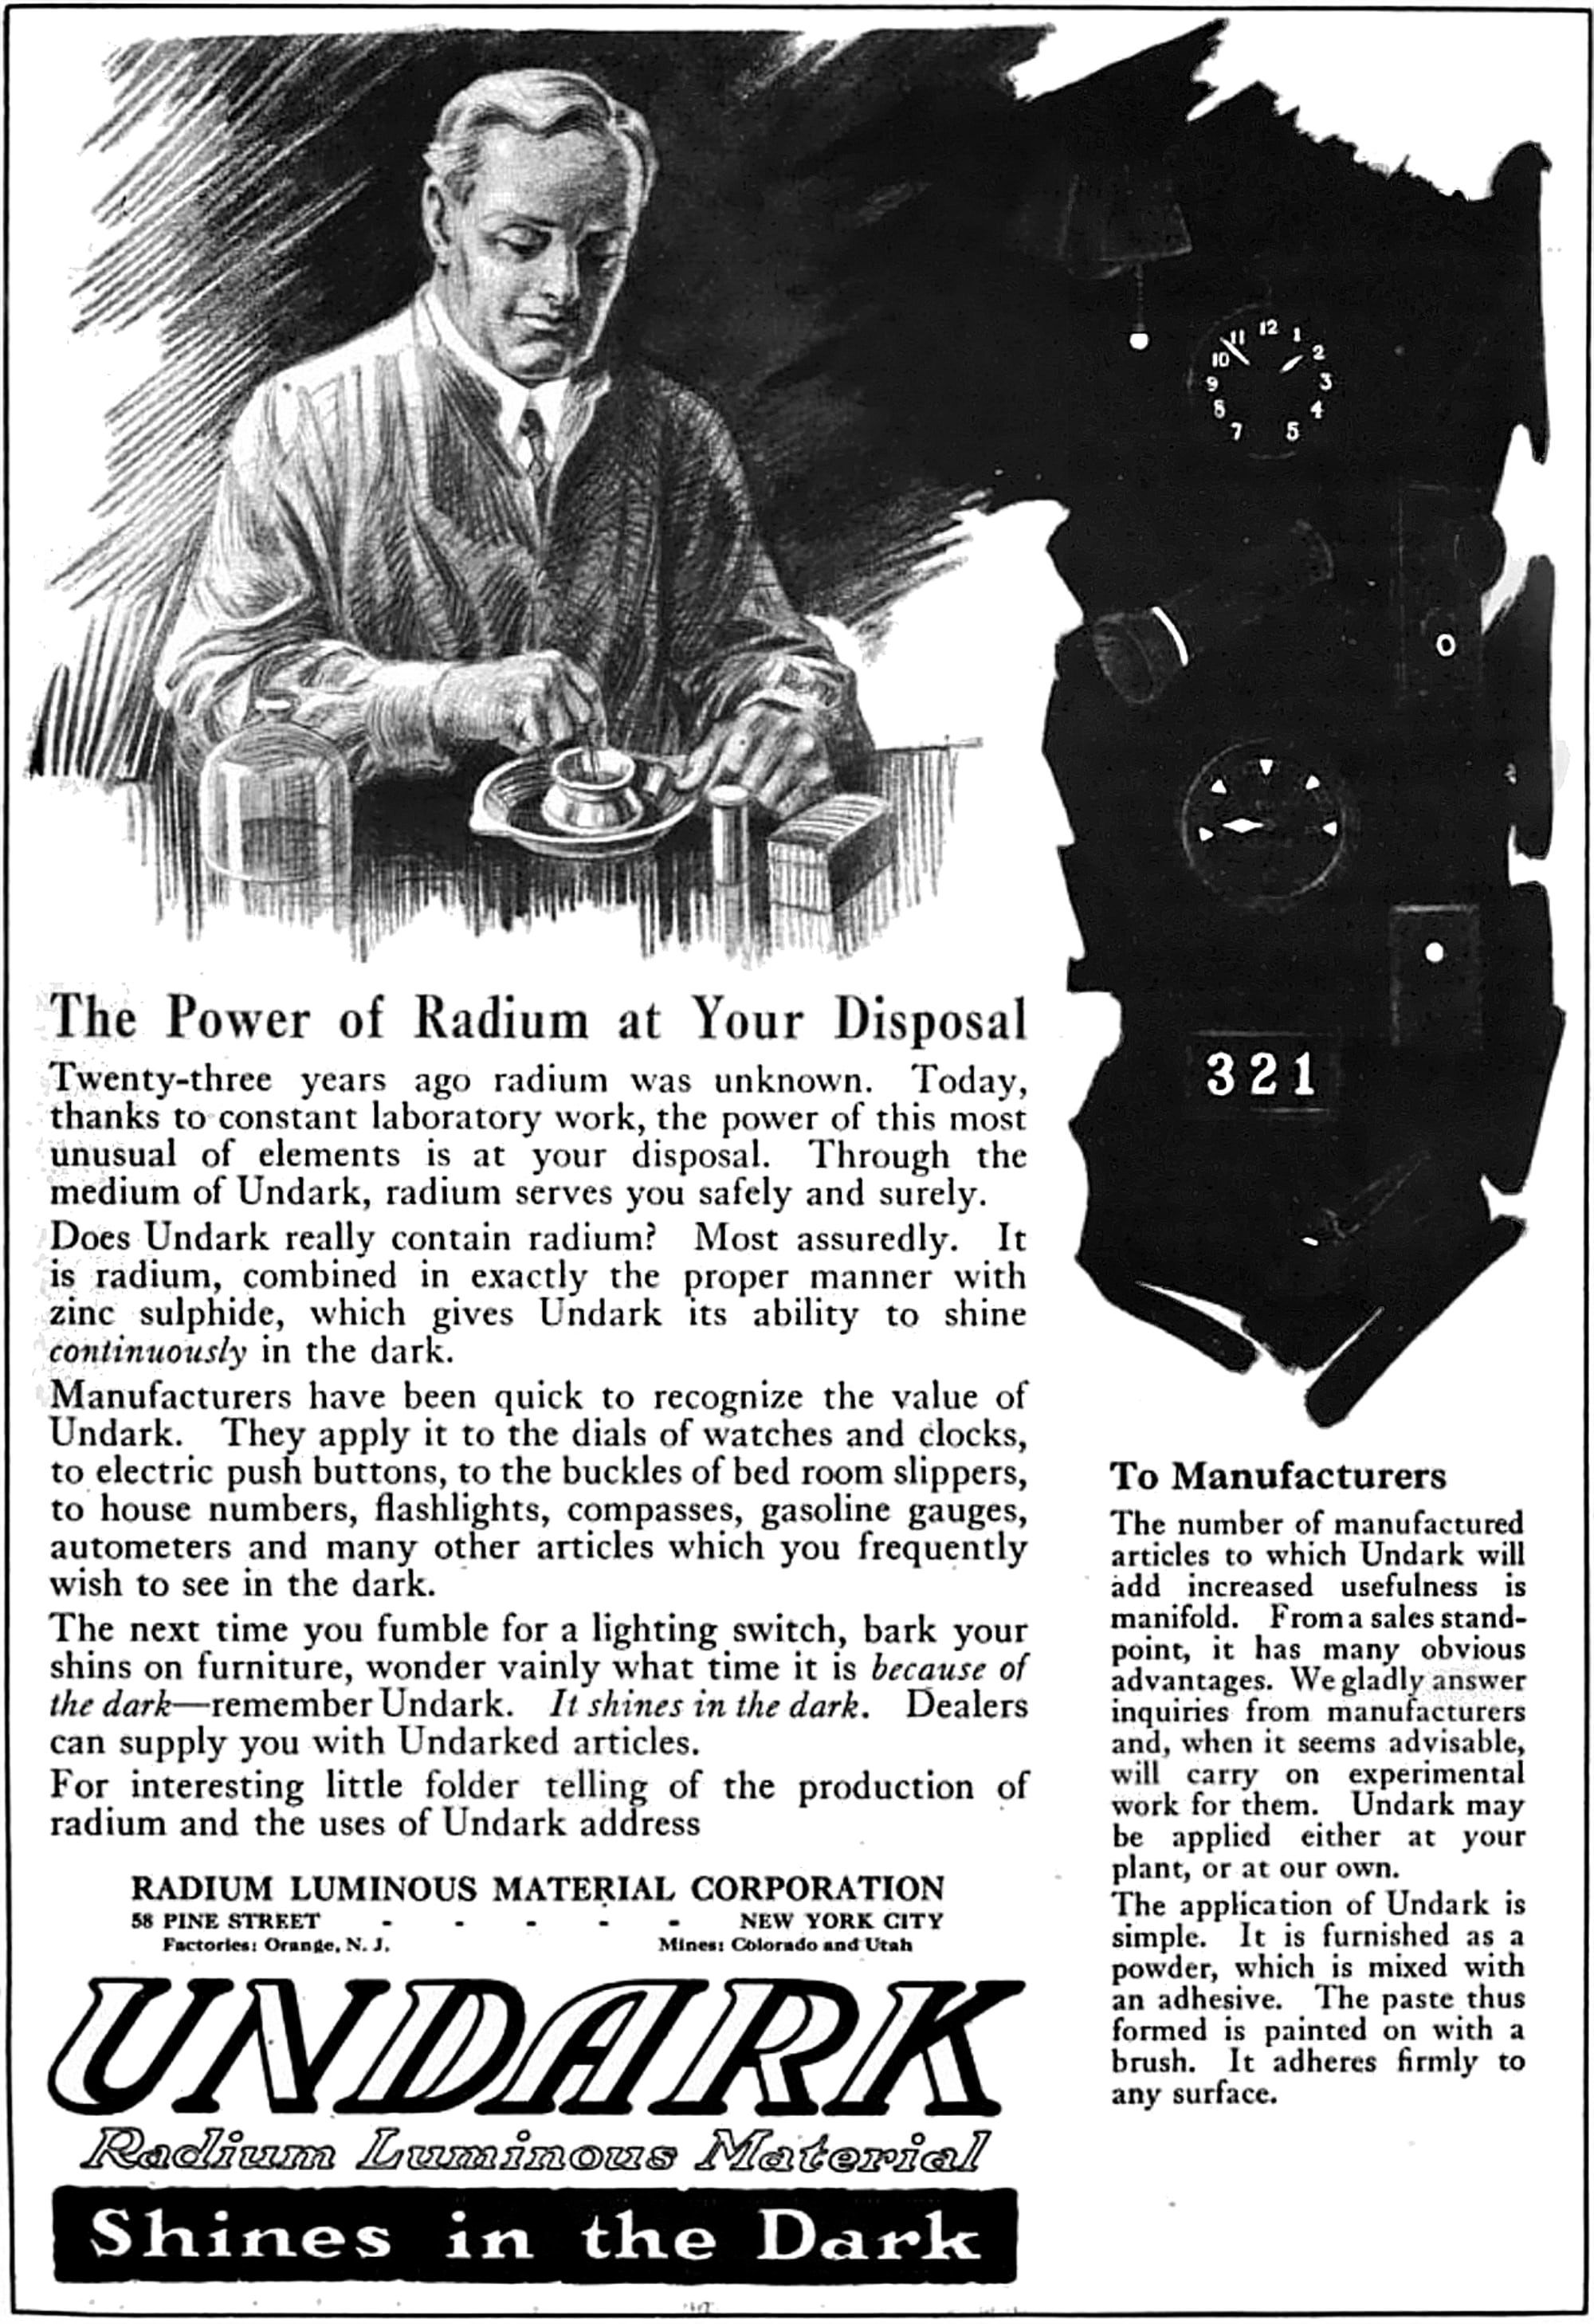 Recommended Reading: New Report Shows Radium Dials Might Pose Serious Danger Undark Radium Girls advertisement 1921 retouched